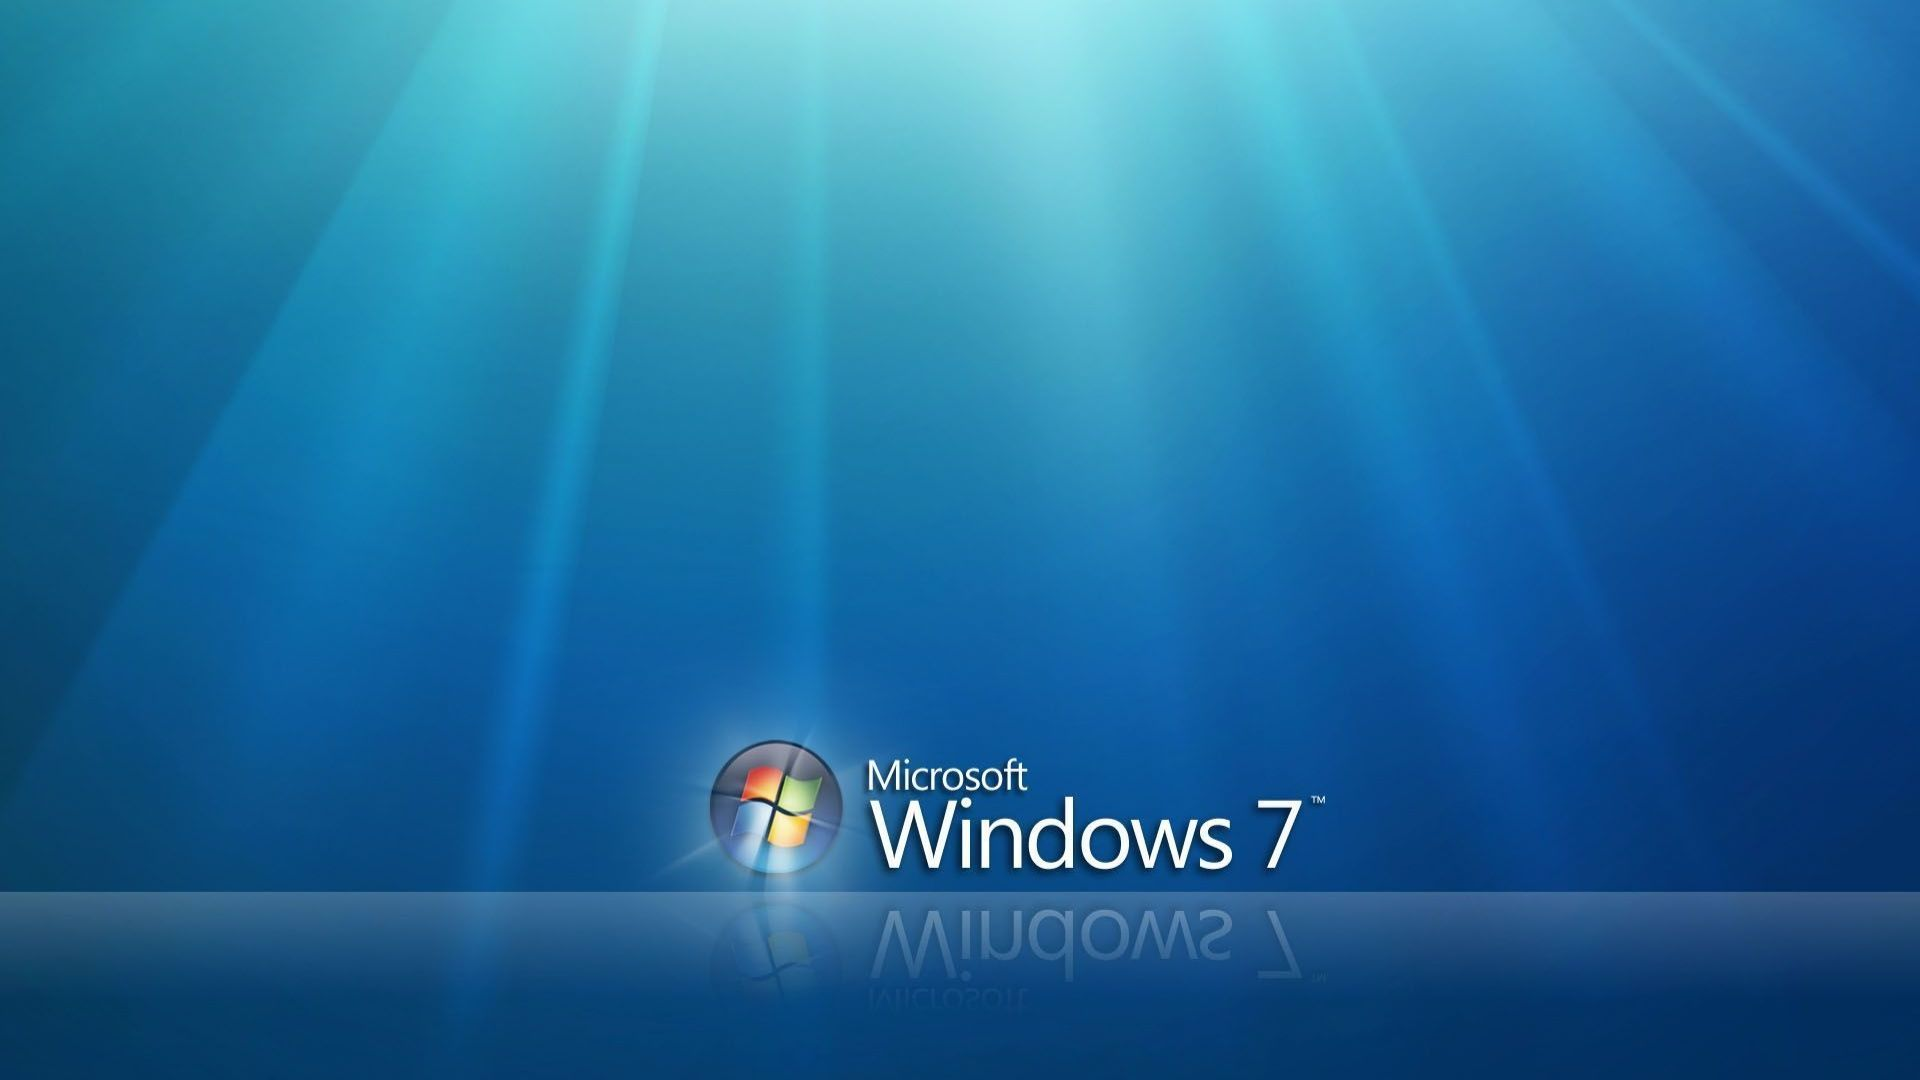 Windows 7 Light Image 17410 Wallpaper High Resolution Wallarthd 1920x1080